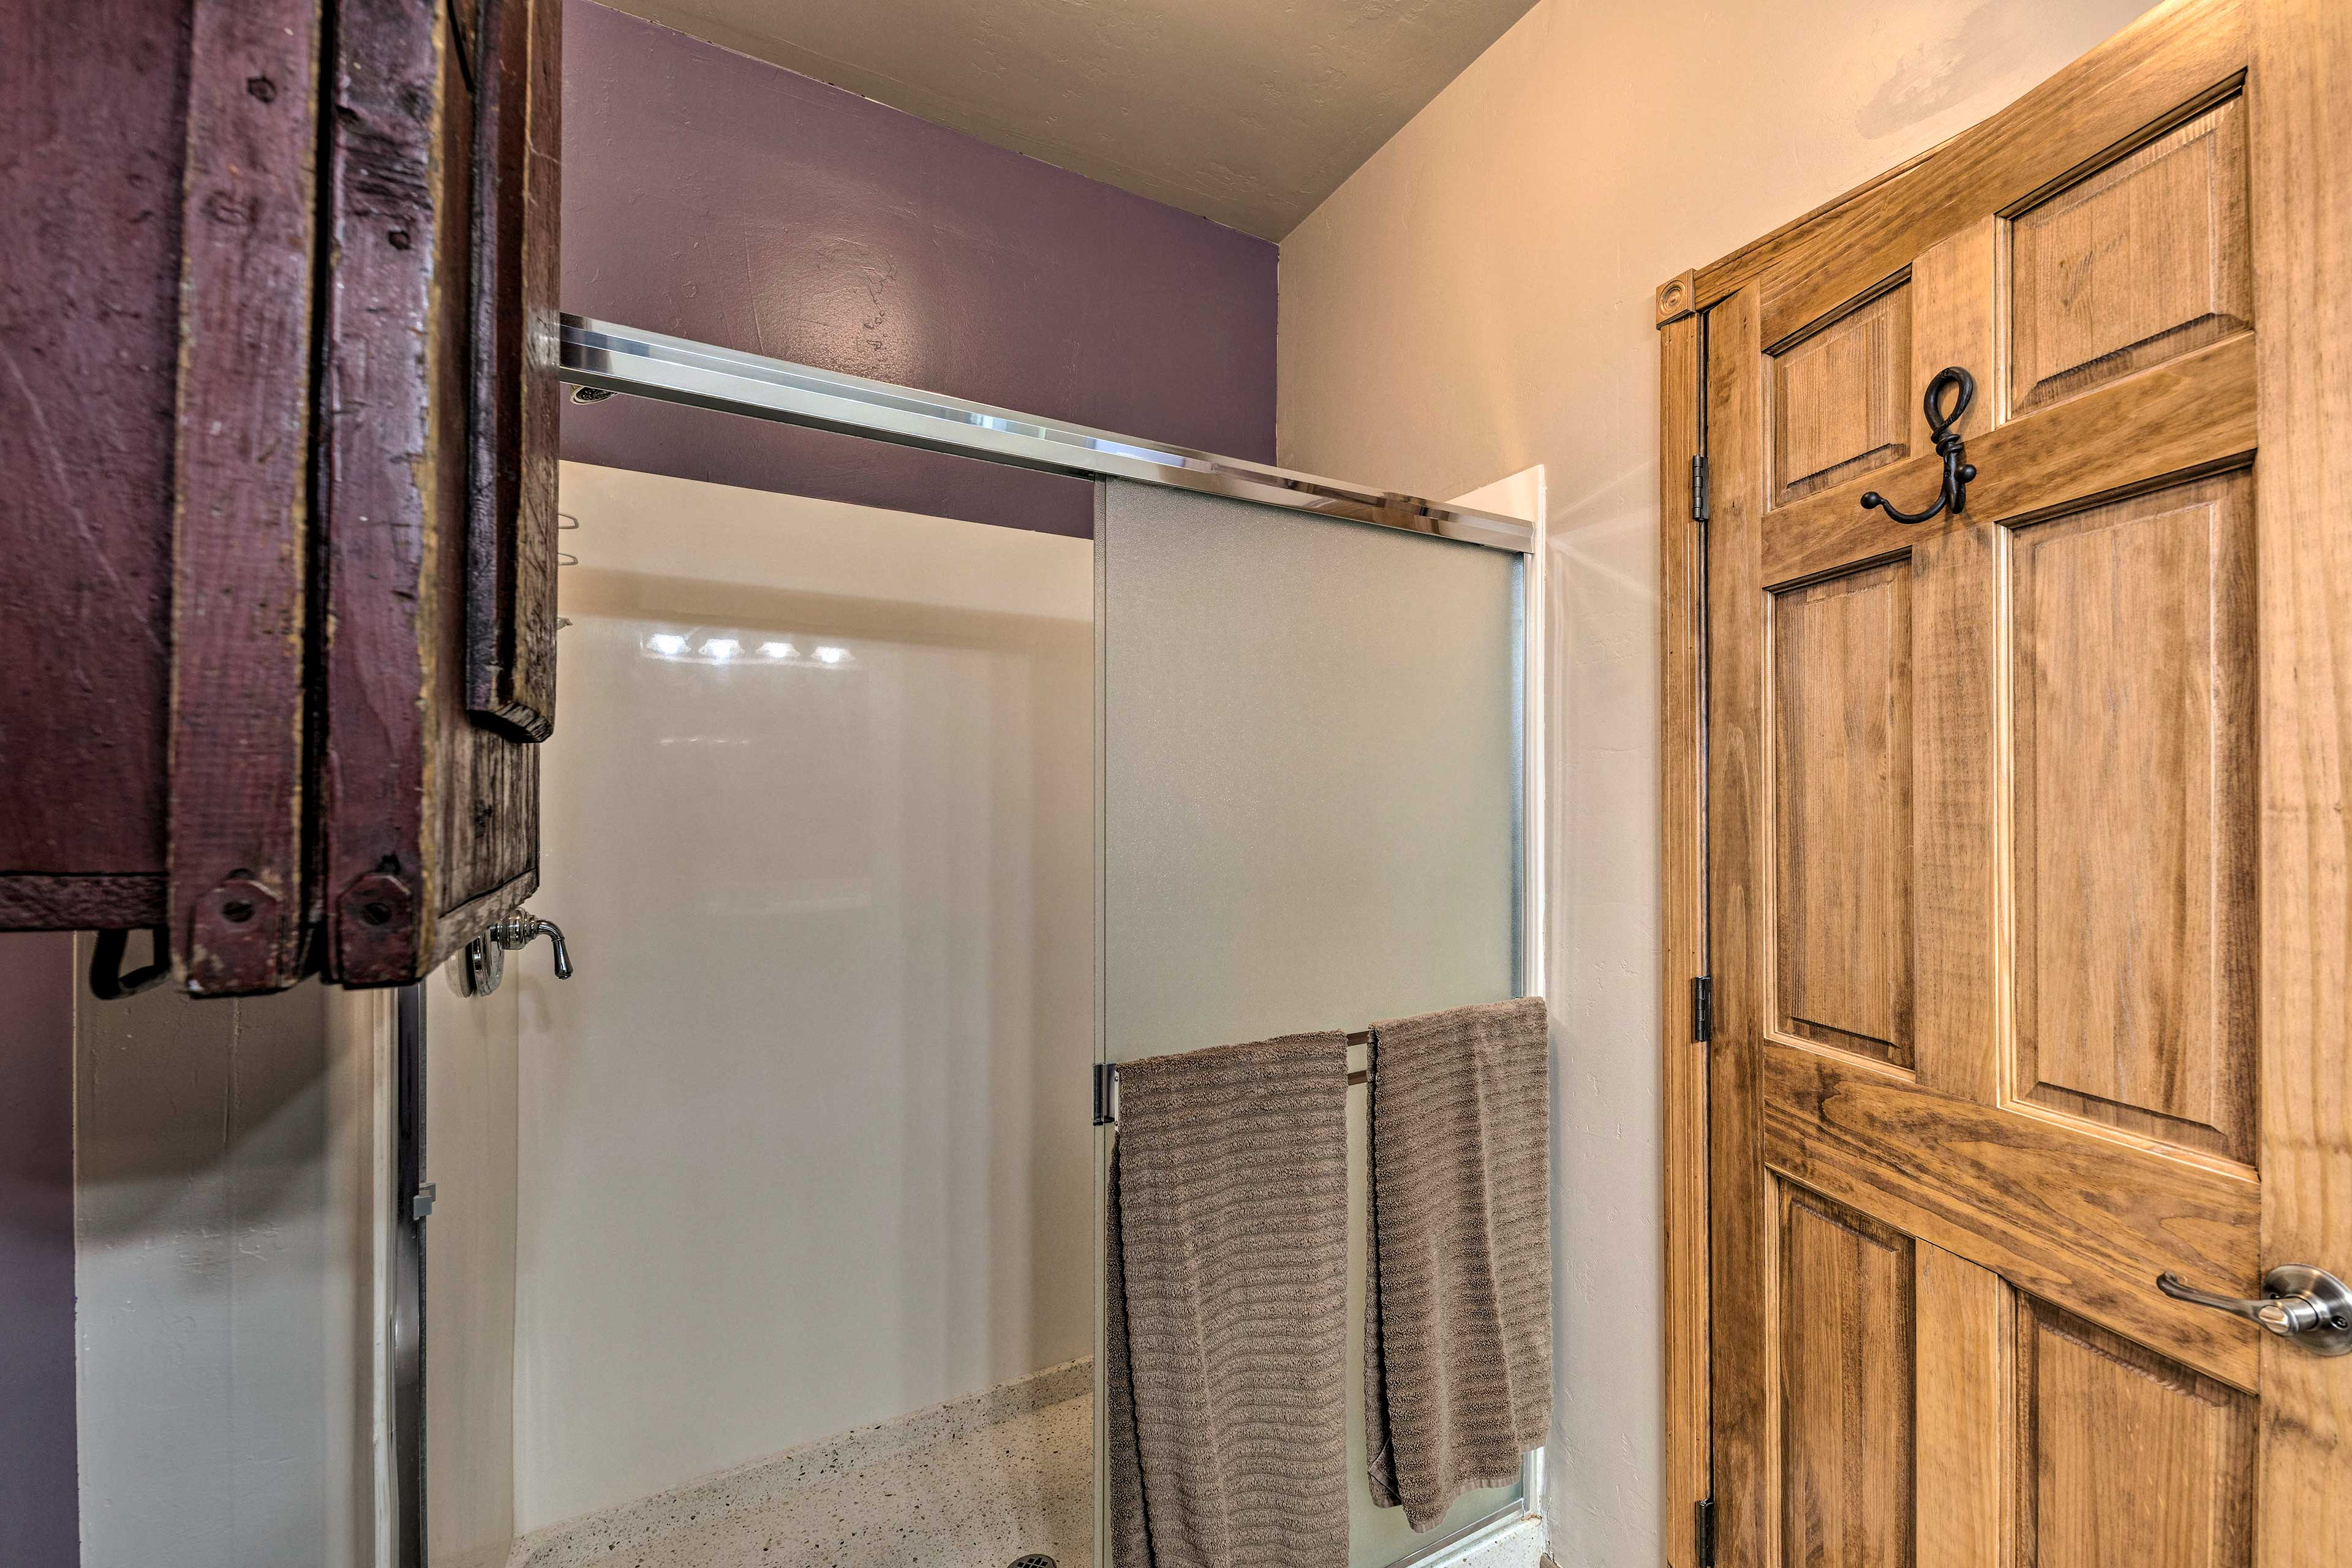 Rinse the day away with complimentary toiletries in the walk-in shower.